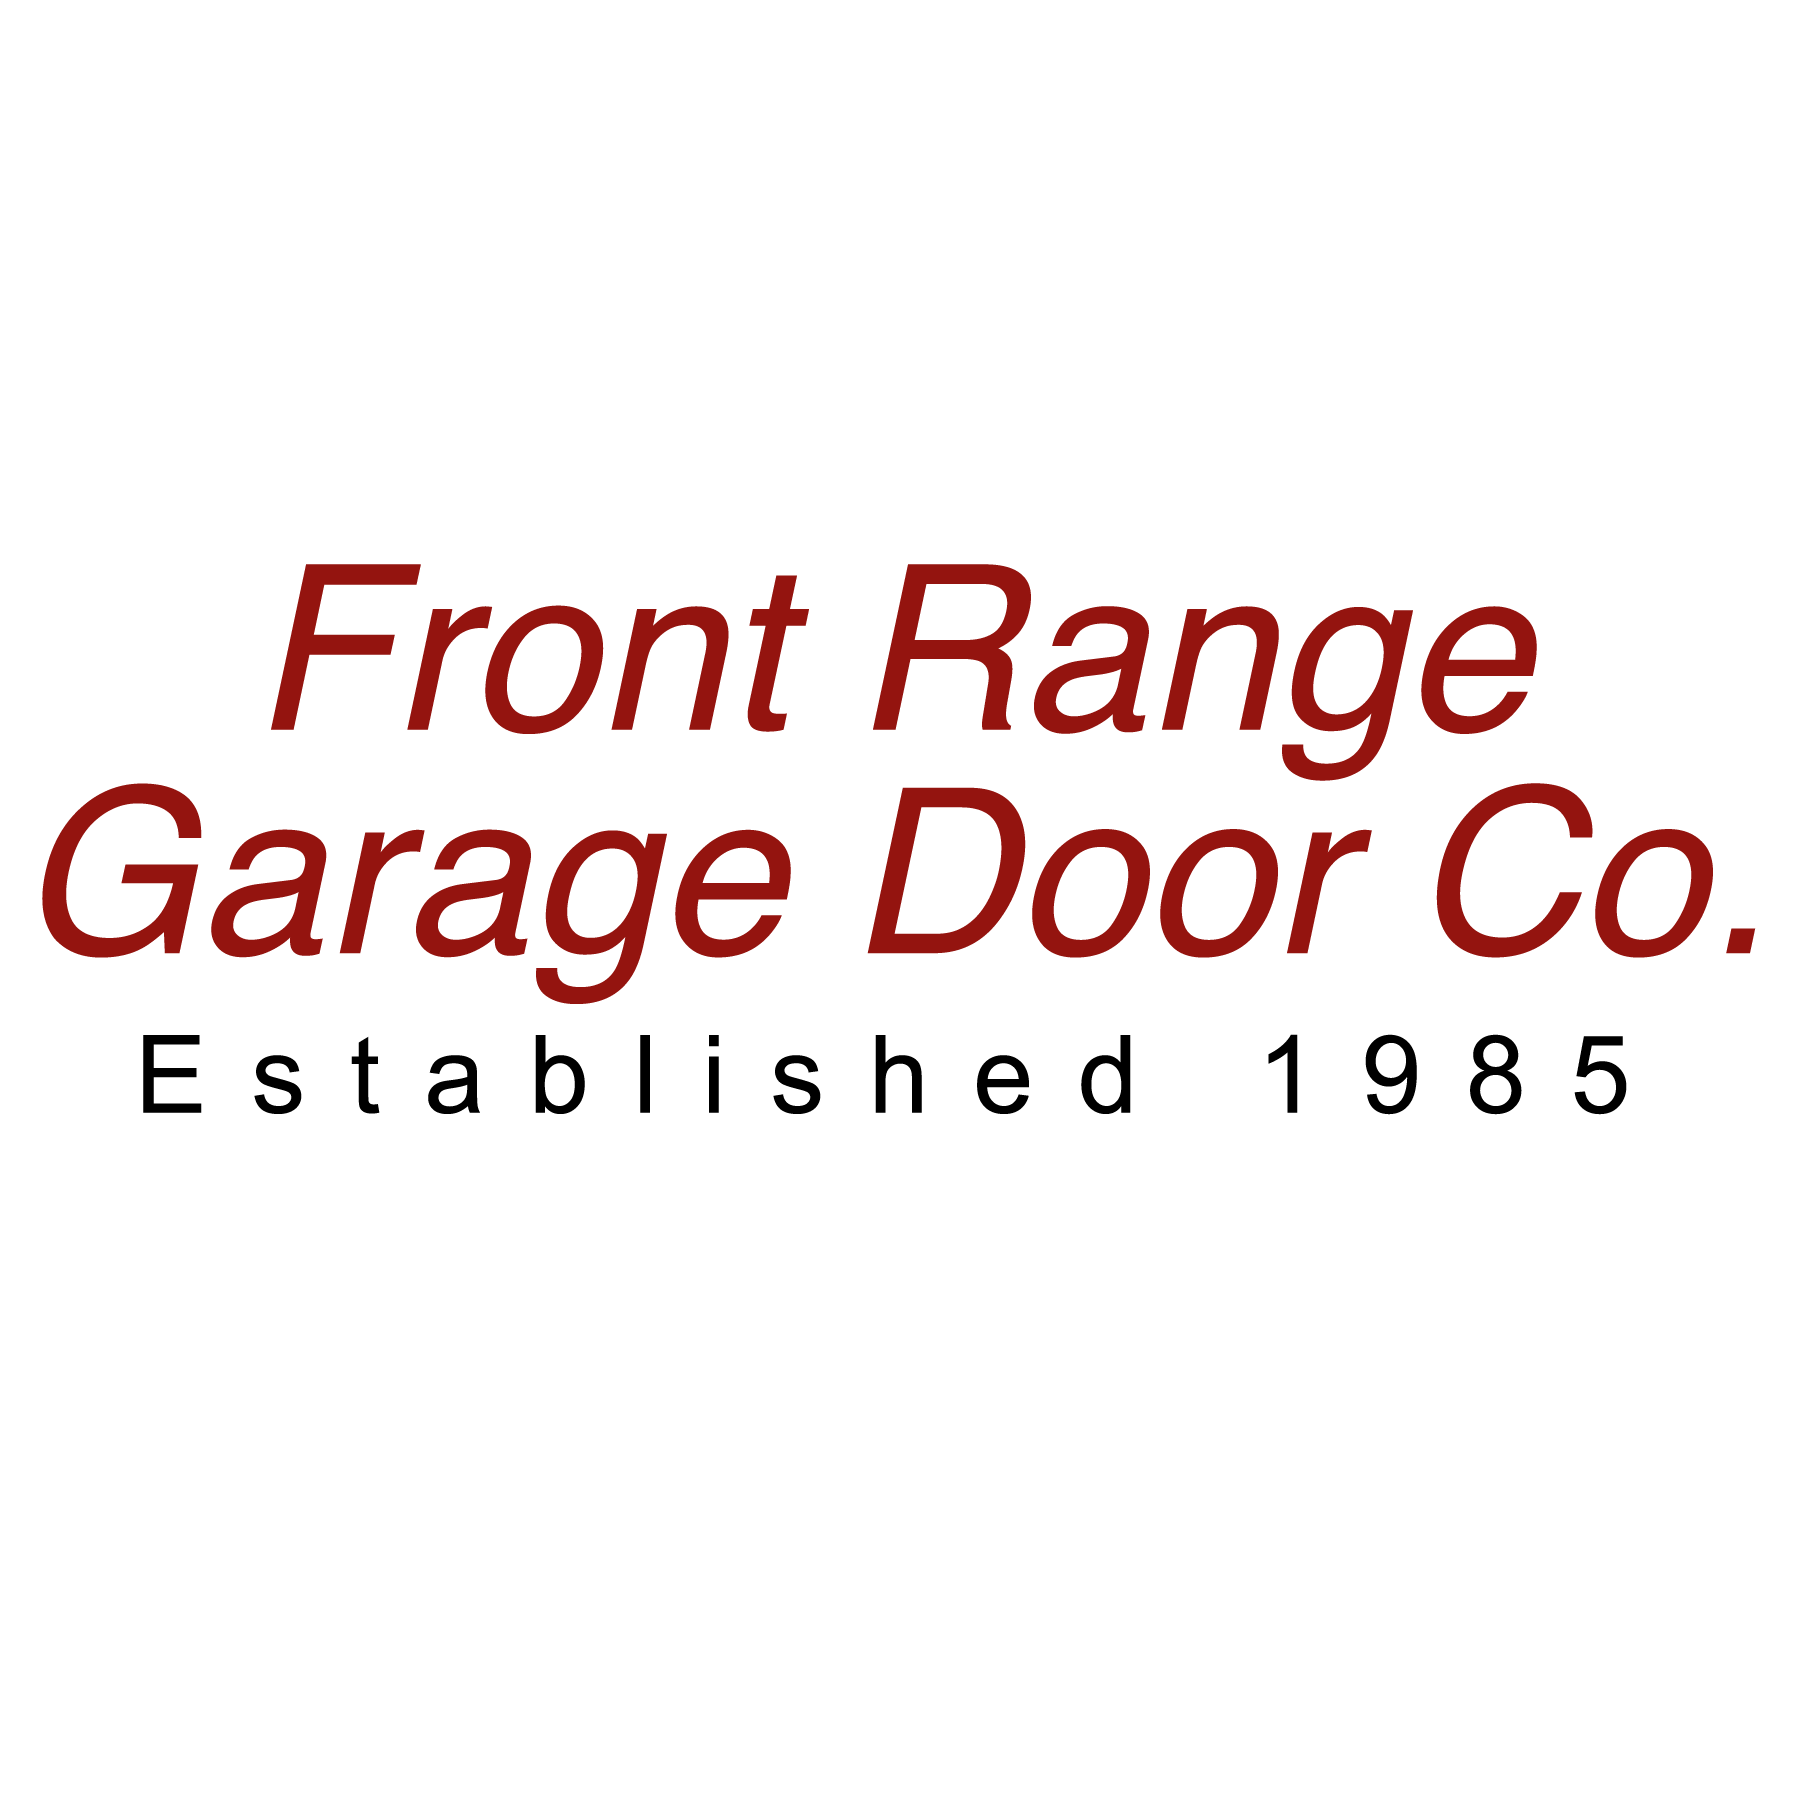 Front Range Garage Door Co.